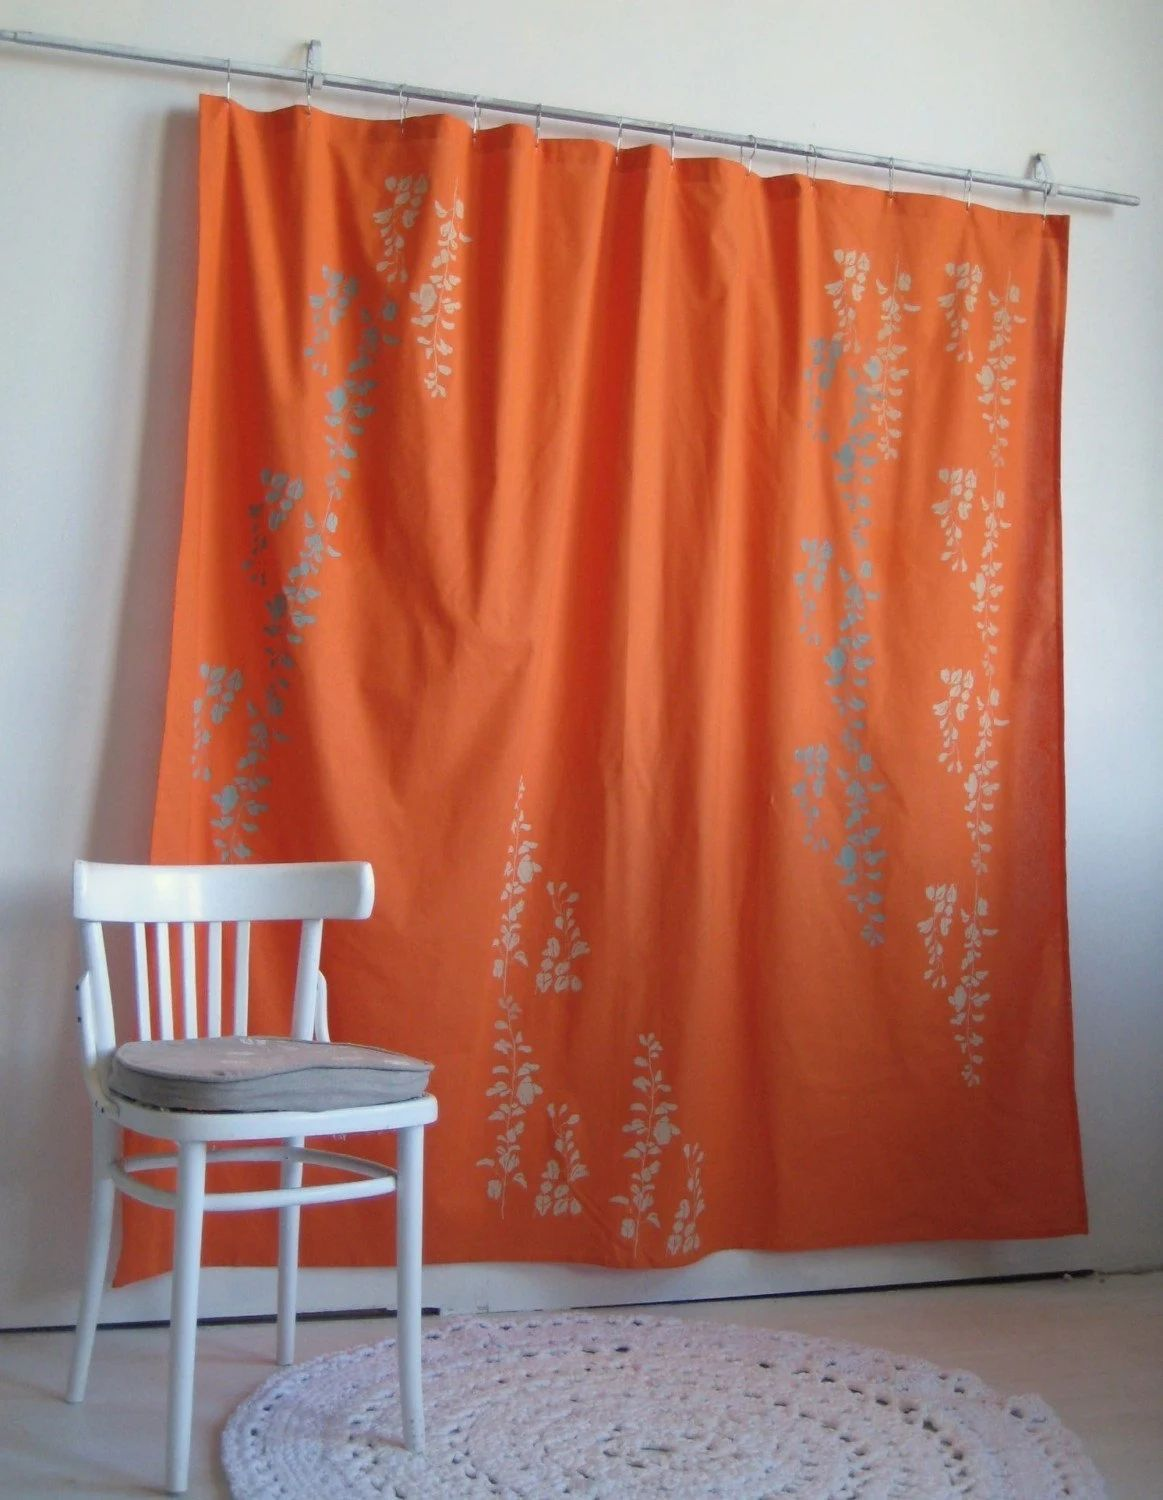 Gray And Orange Shower Curtain image ideas - Home Ideas For your Home